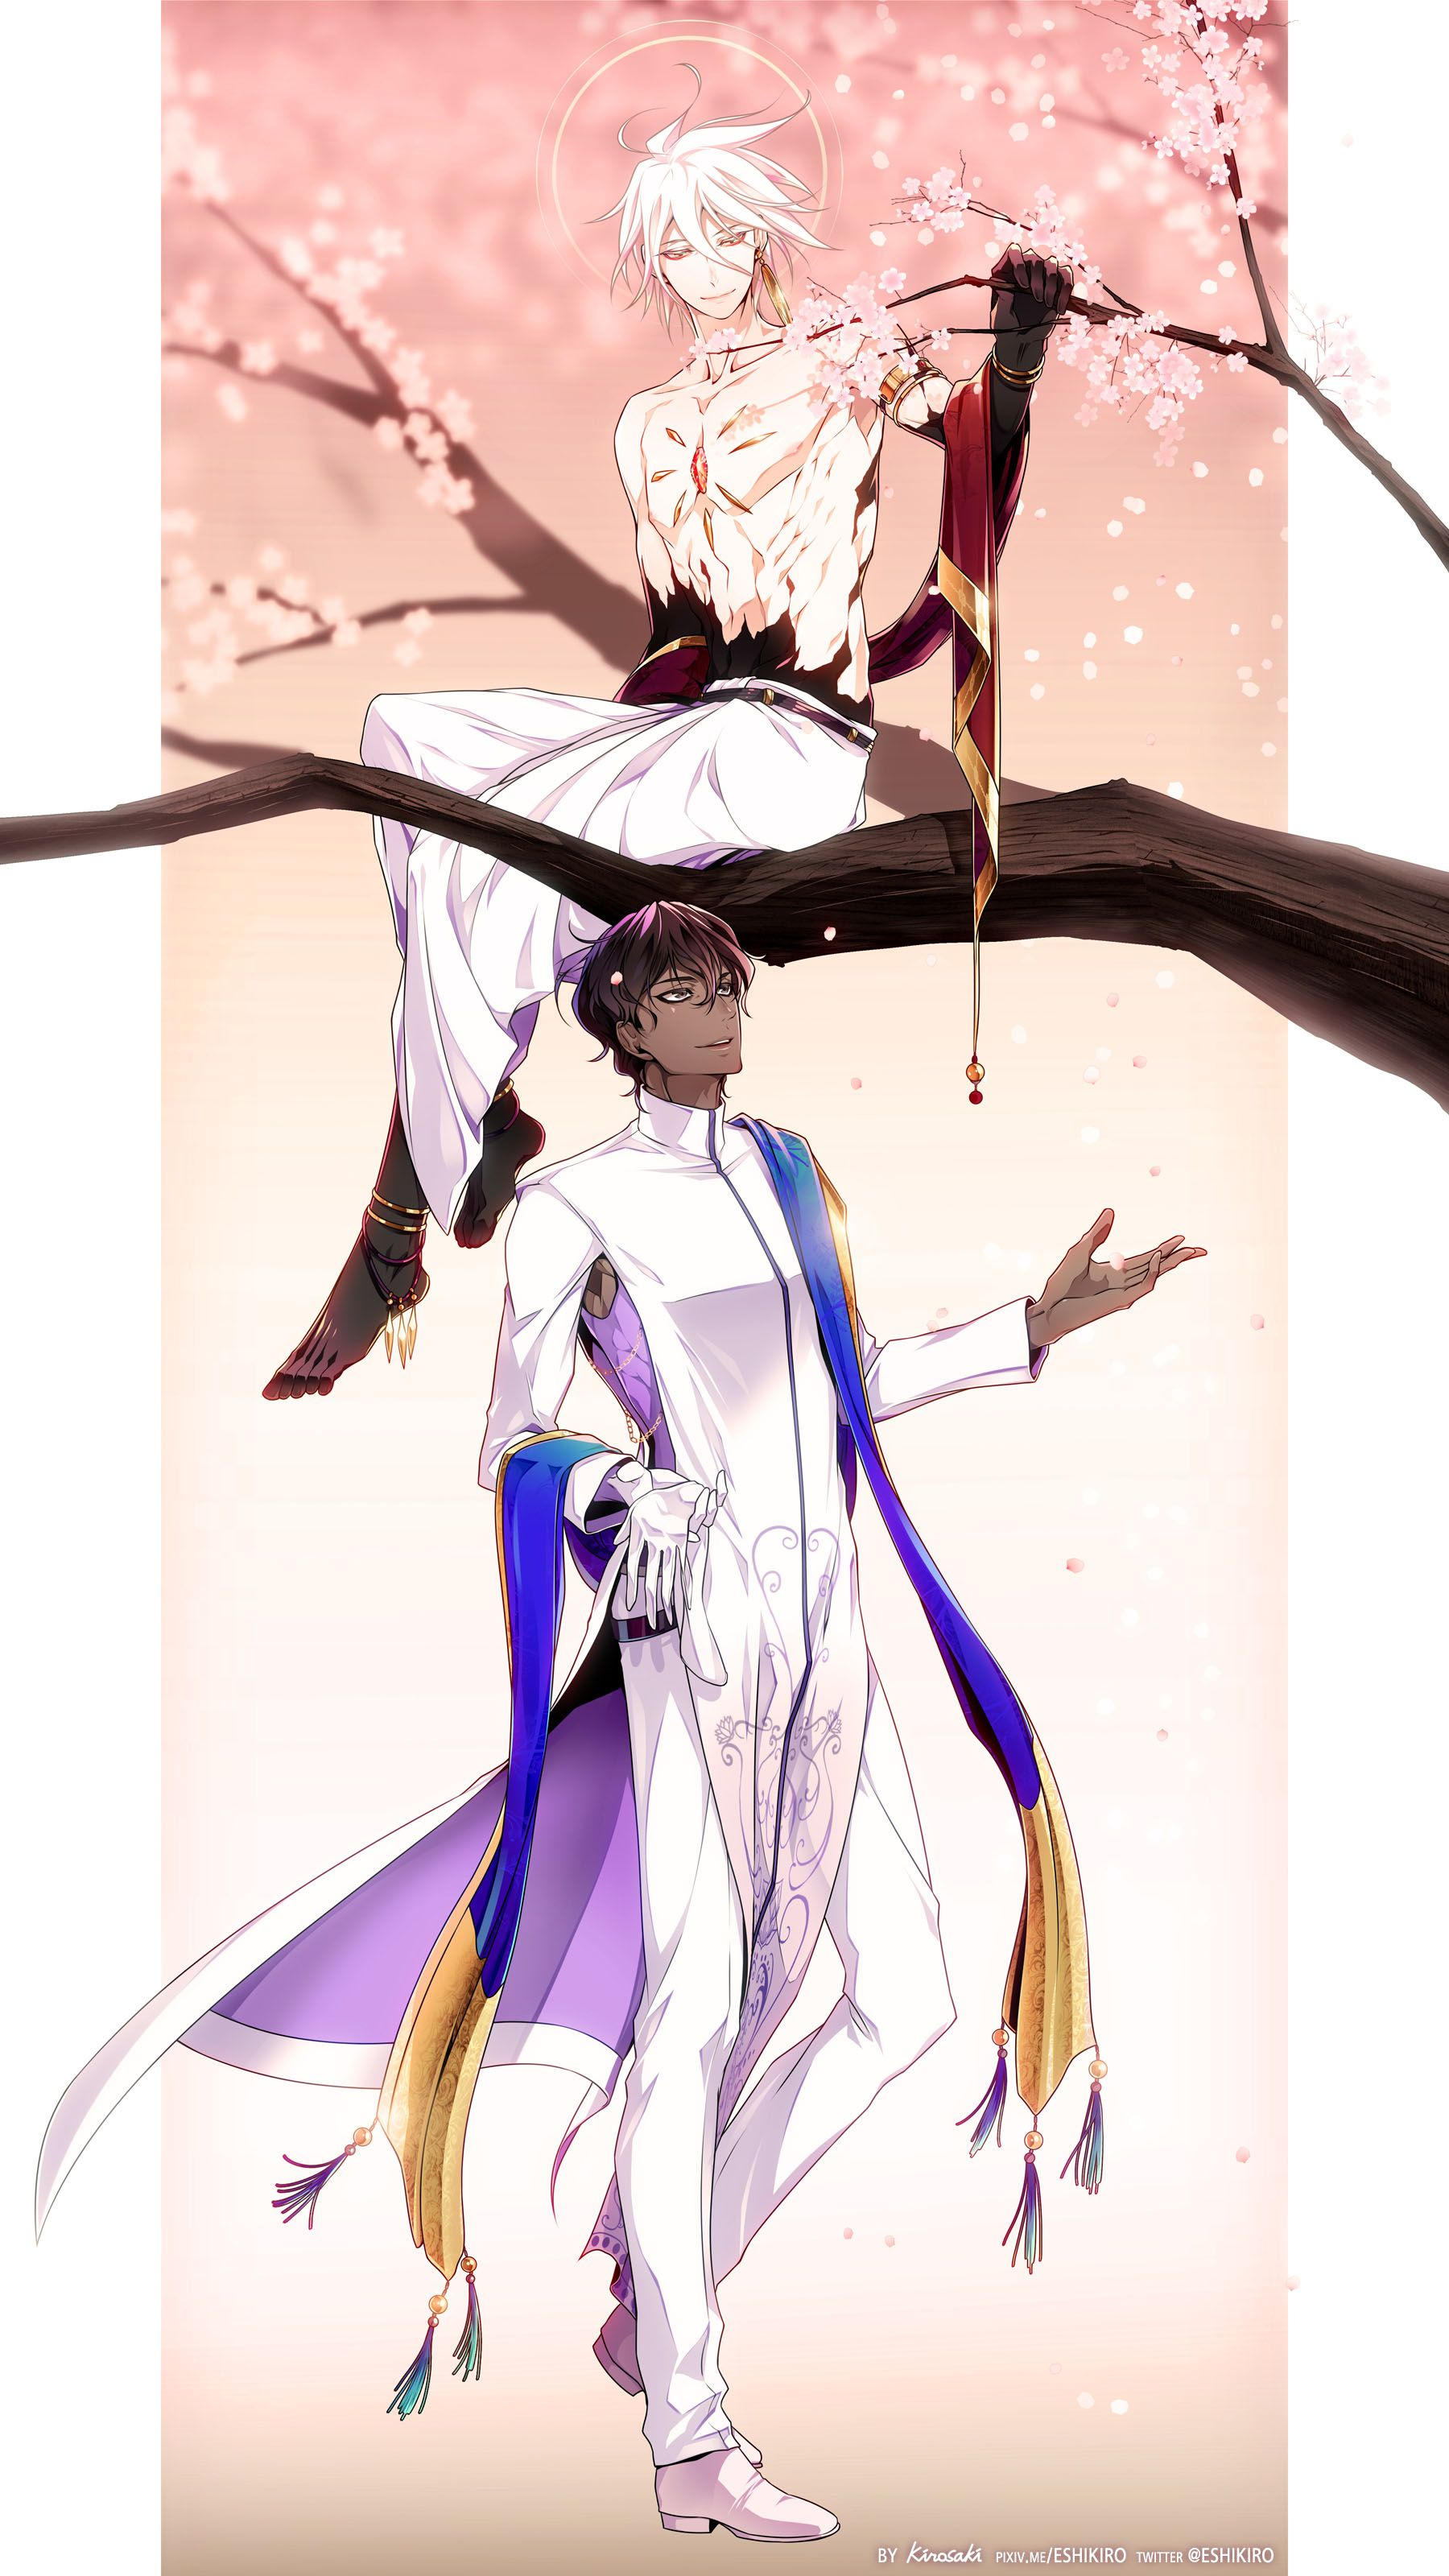 Karna / Arjuna【Fate/Grand Order】 Fate, Fate anime series